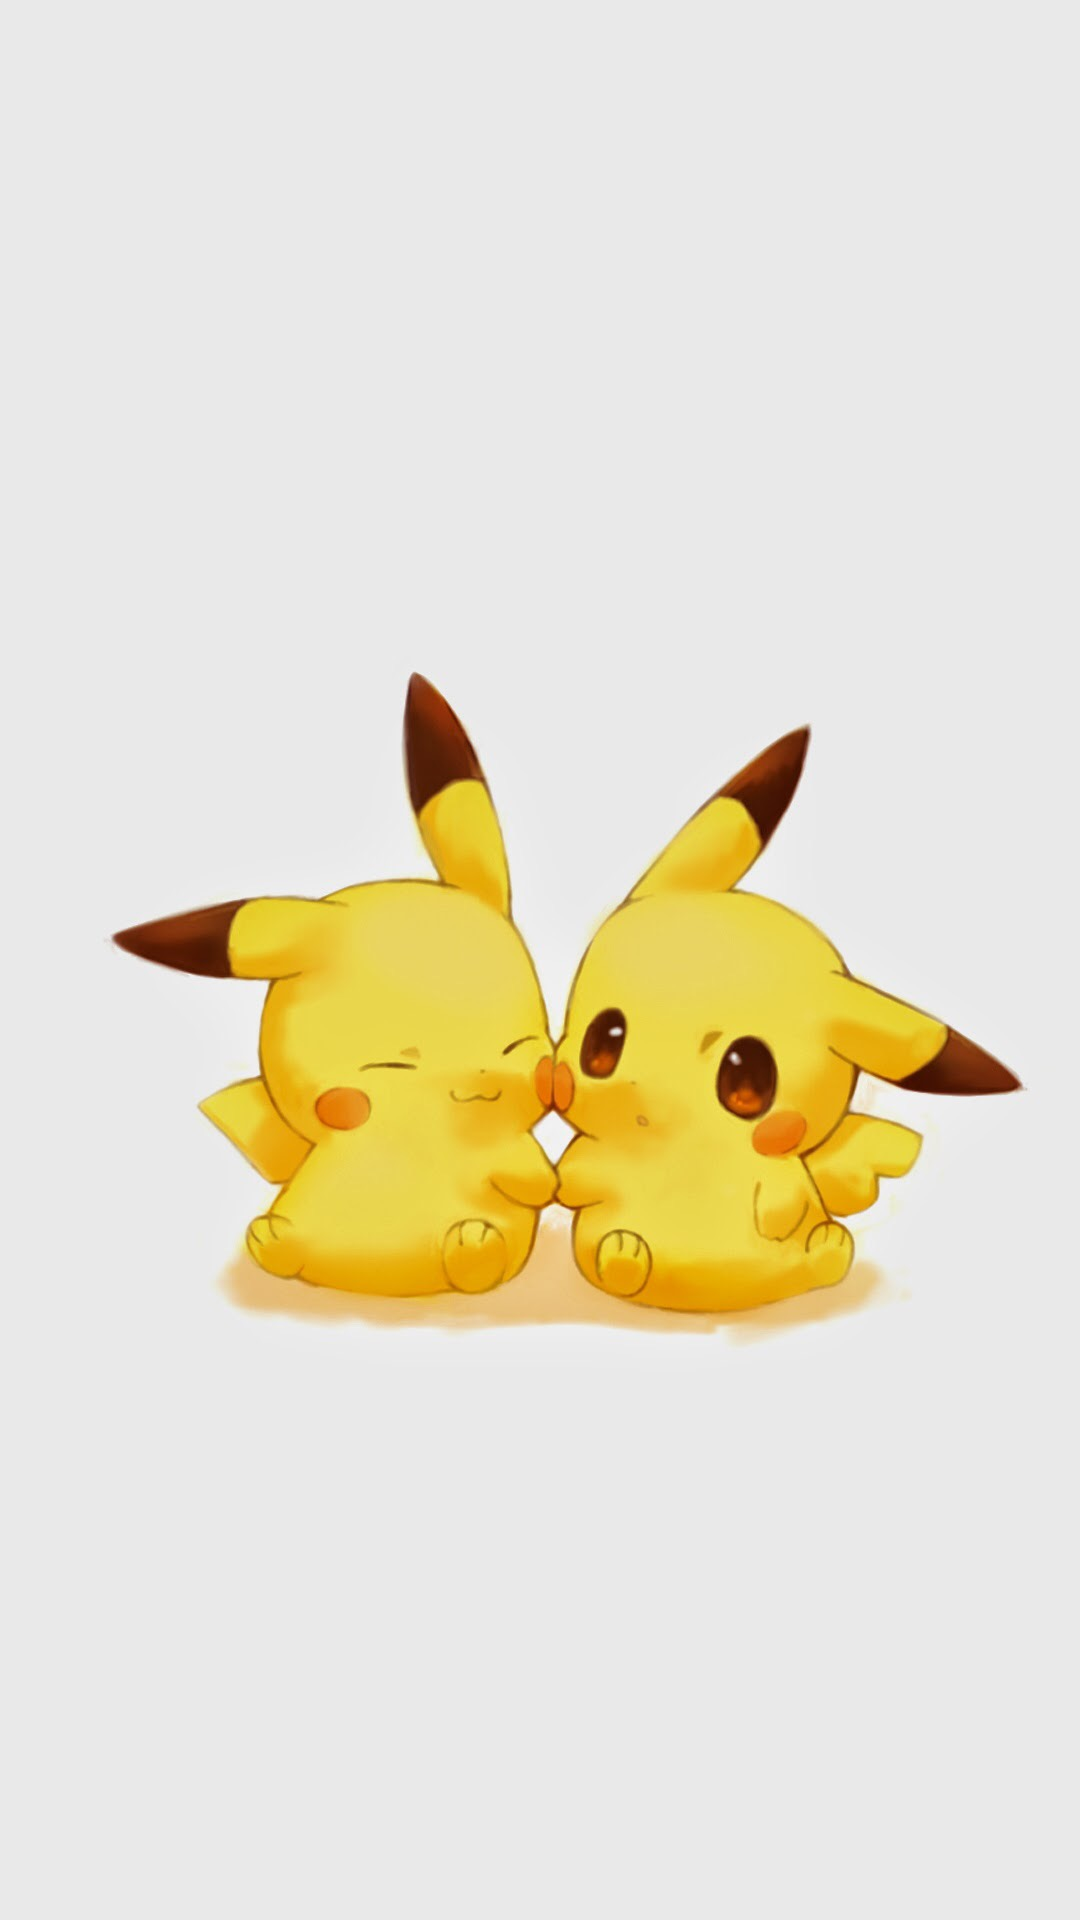 Tap-image-for-more-funny-cute-Pikachu-Pikachu-mobile-for-iPhone-s-c-wallpaper-wp340339